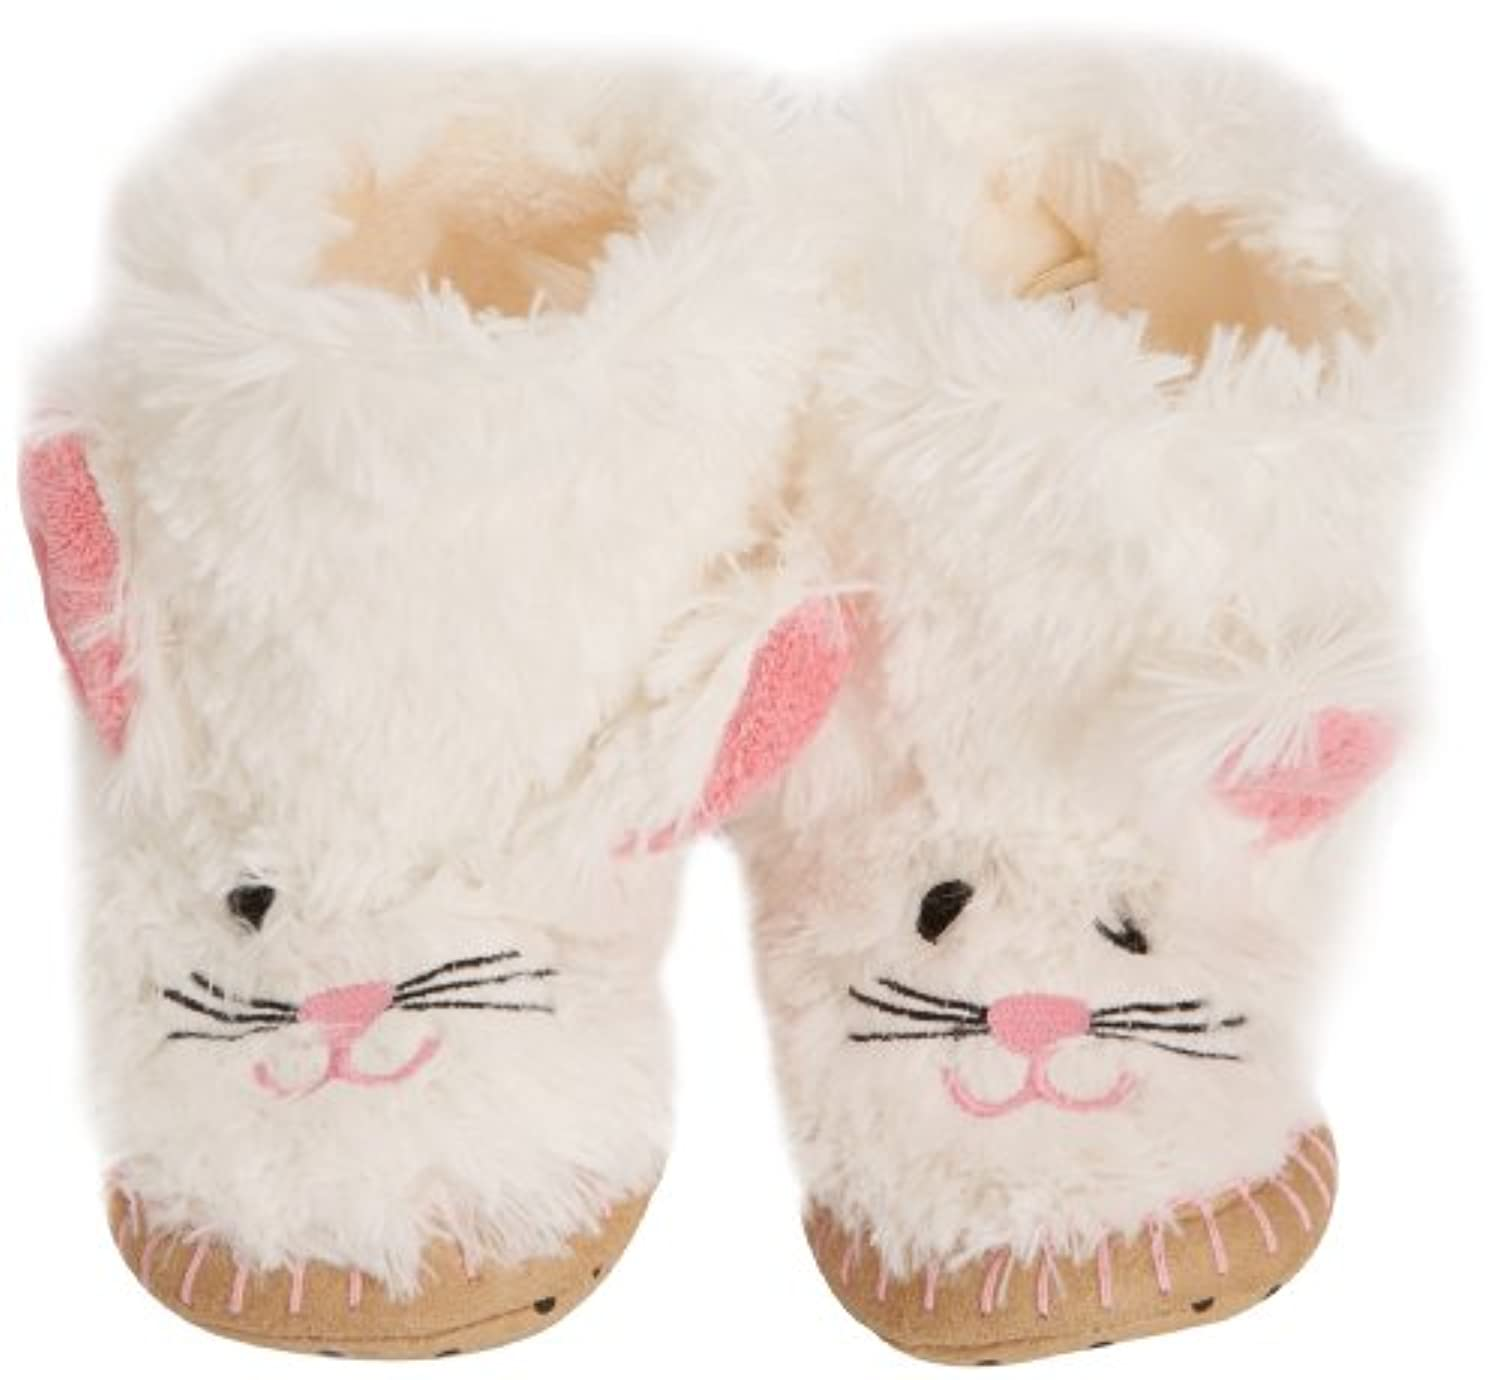 Hatley Slouch - Bunny, Girls' Hi-Top Slippers, White (White), M Child UK (27/28 EU)